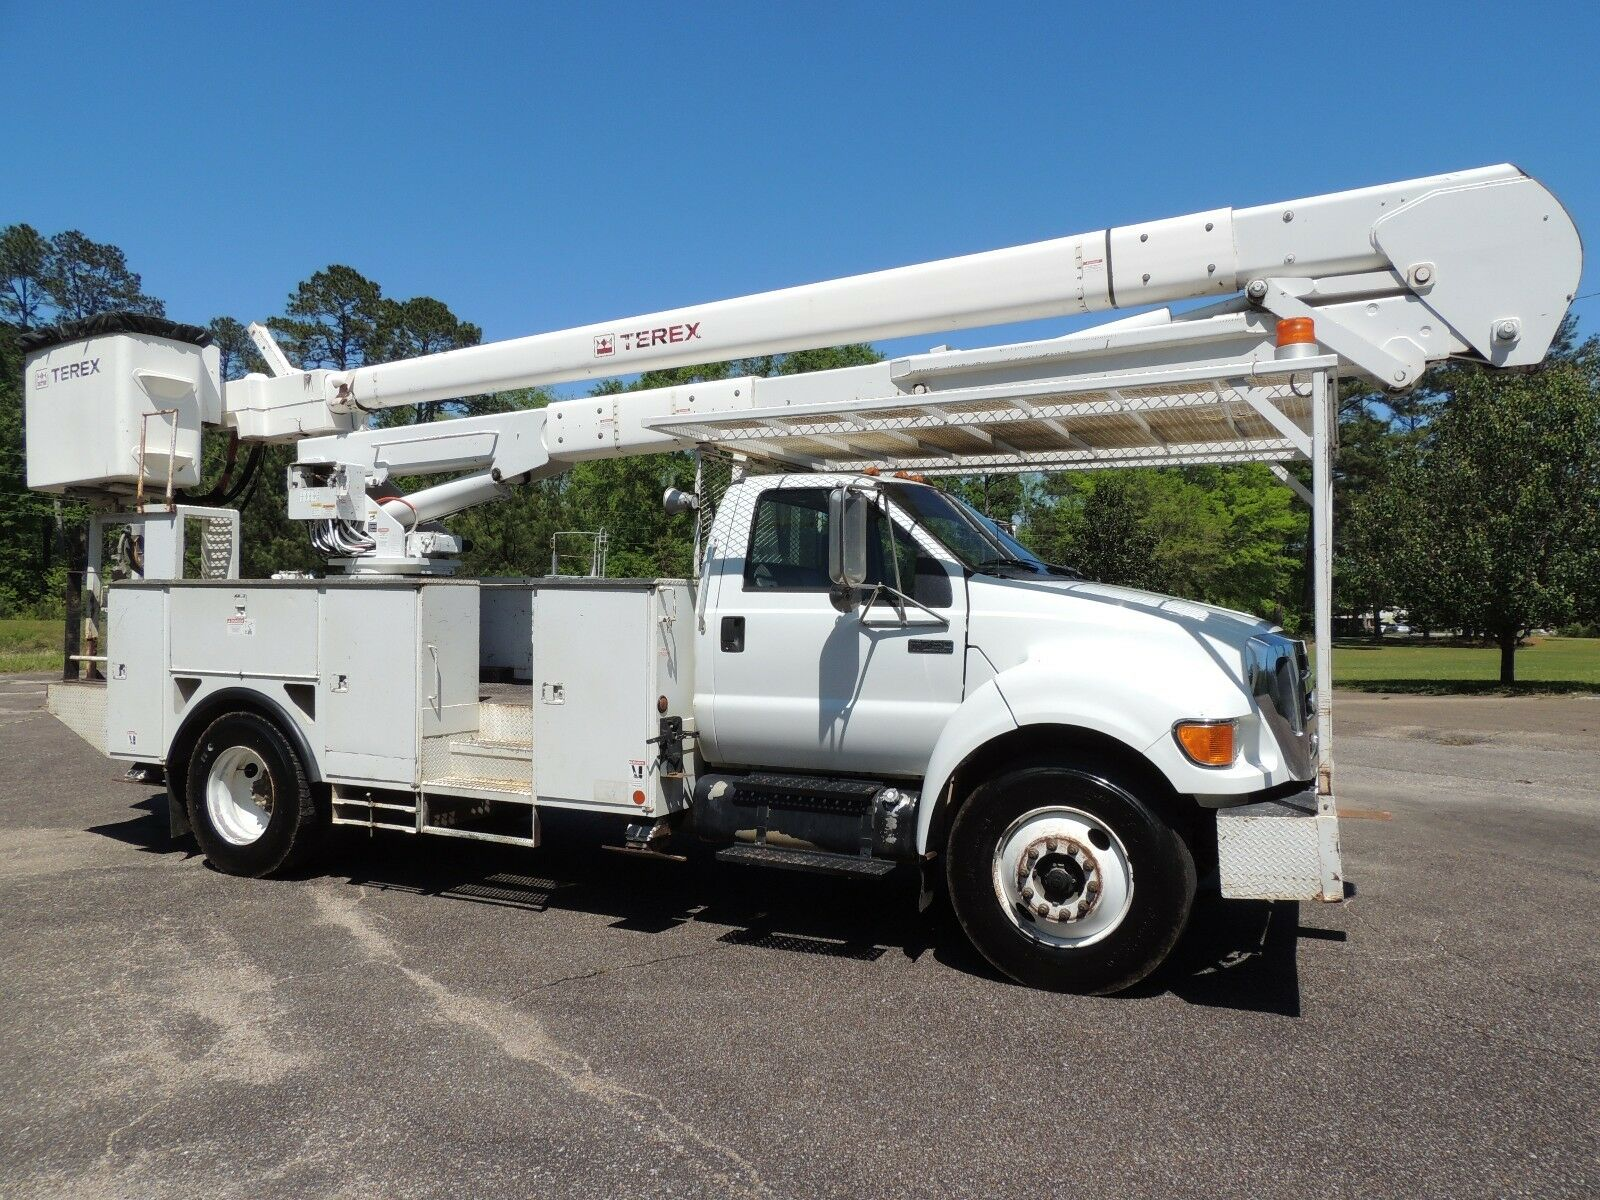 Terex hi ranger service manual array 2007 ford f 750 terex hi ranger 55 foot bucket truck in mississippi rh fandeluxe Image collections